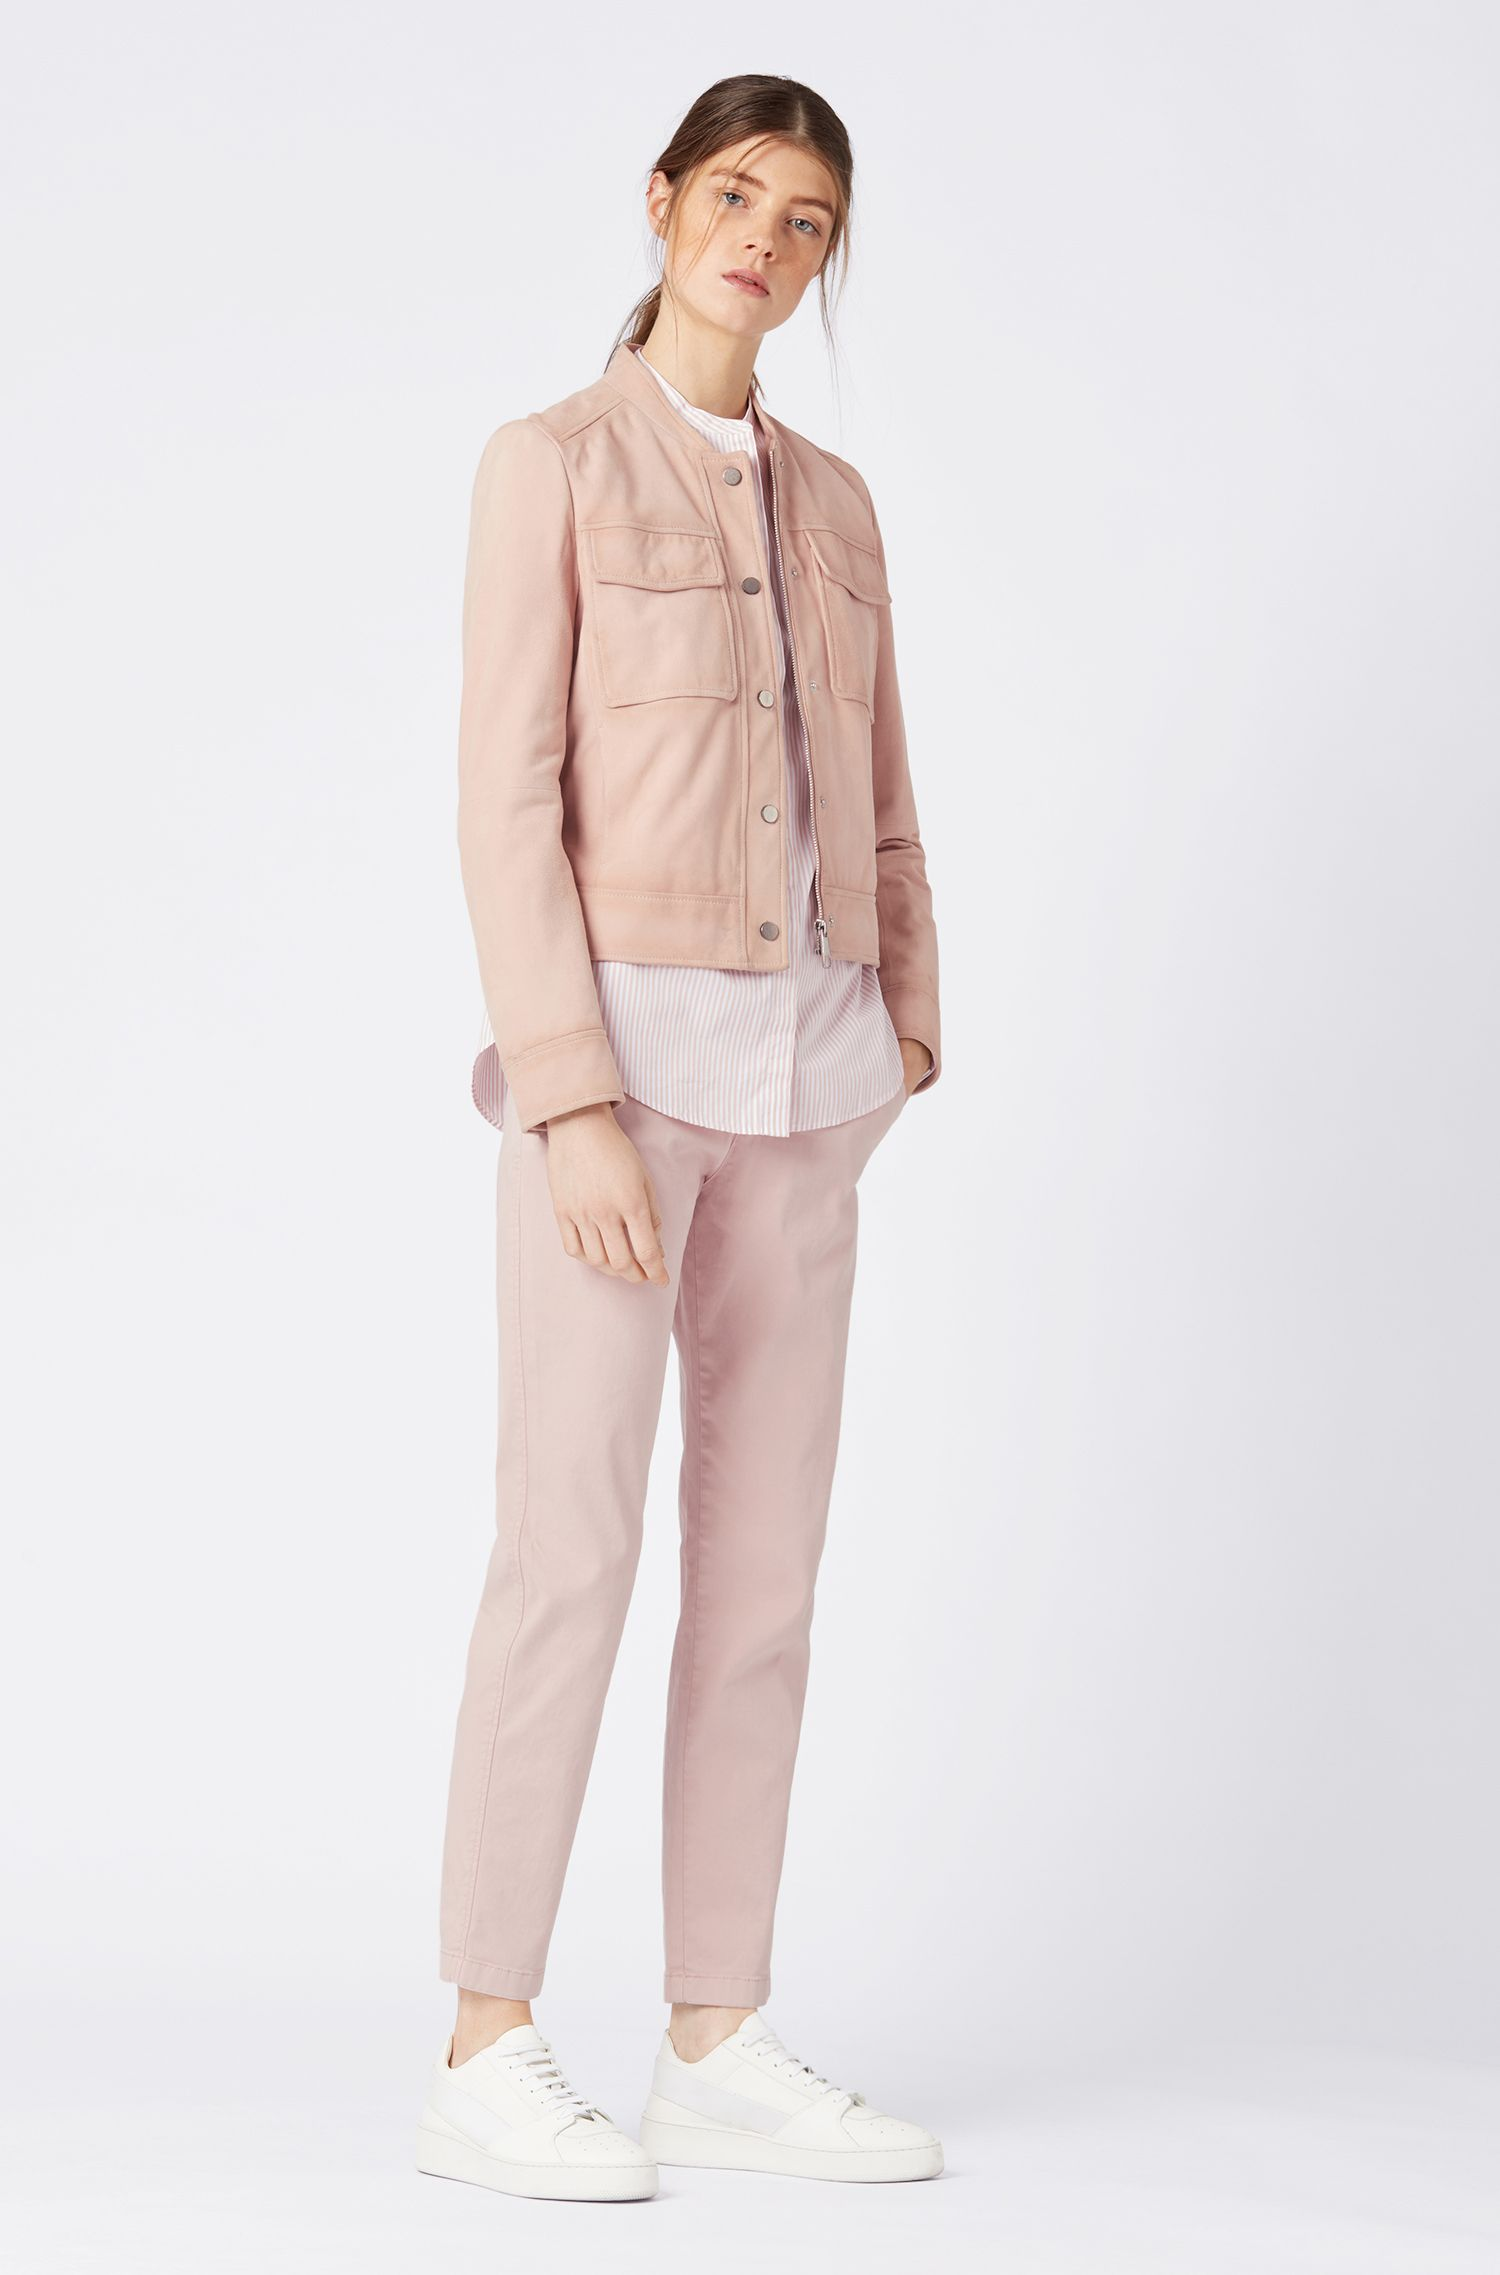 Hugo Boss - Bomber jacket in suede leather with patch pockets - 2